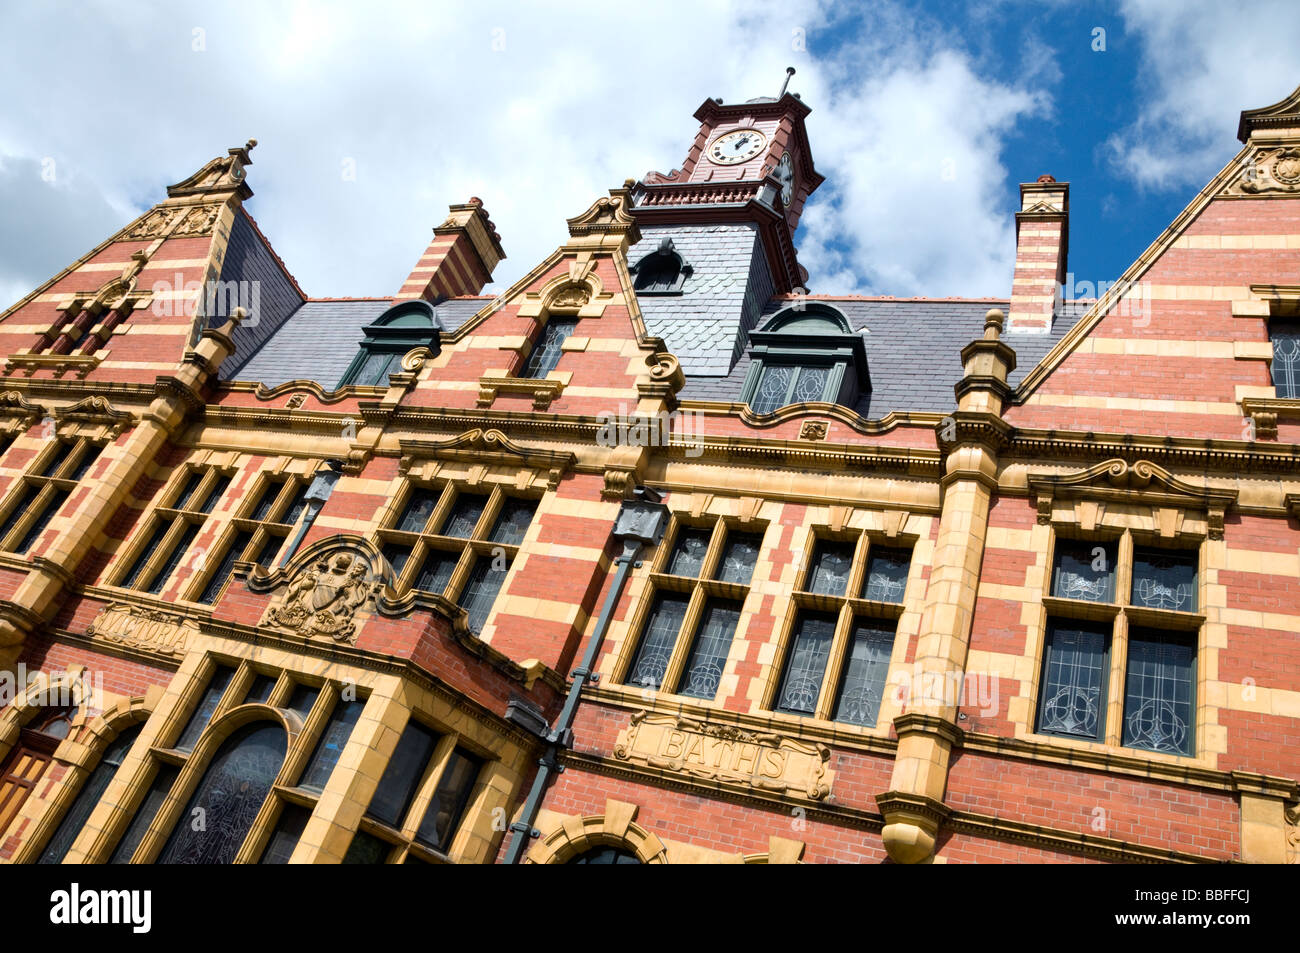 The exterior of Victoria Baths in Manchester, England, UK, following extensive restoration work - Stock Image